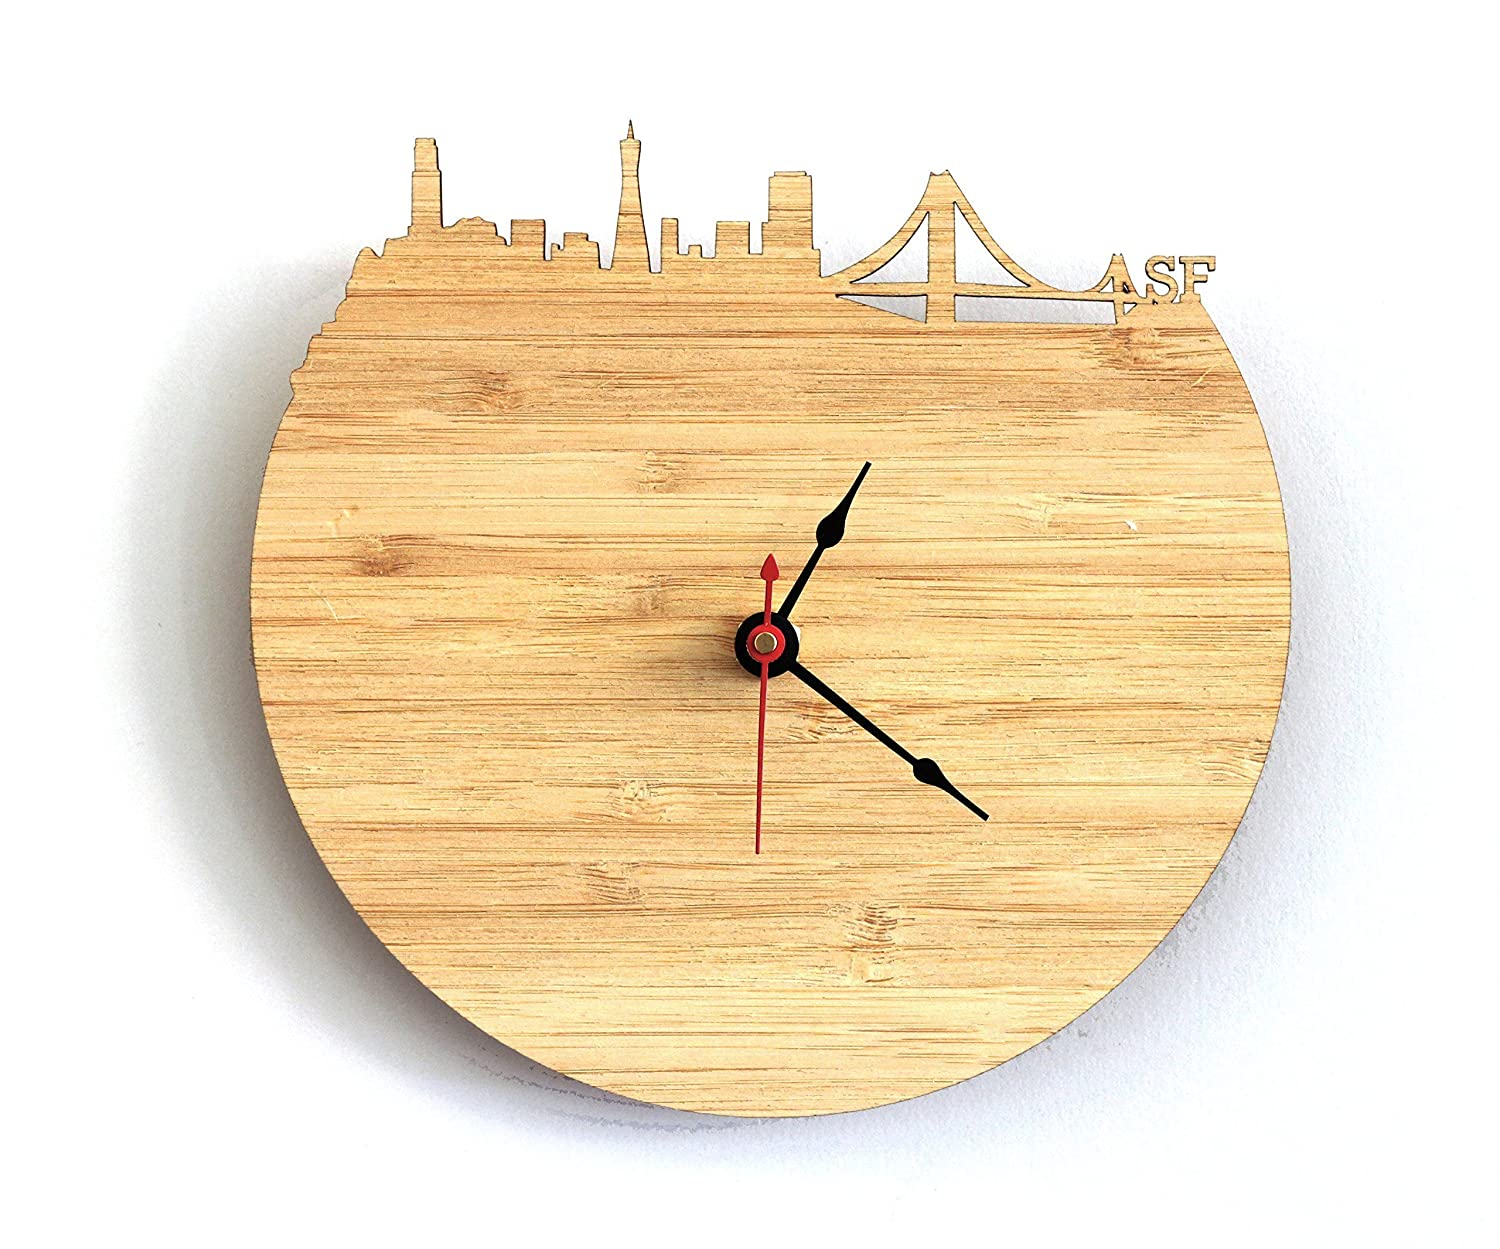 Amazon.com: San Francisco Skyline Clock: Handmade